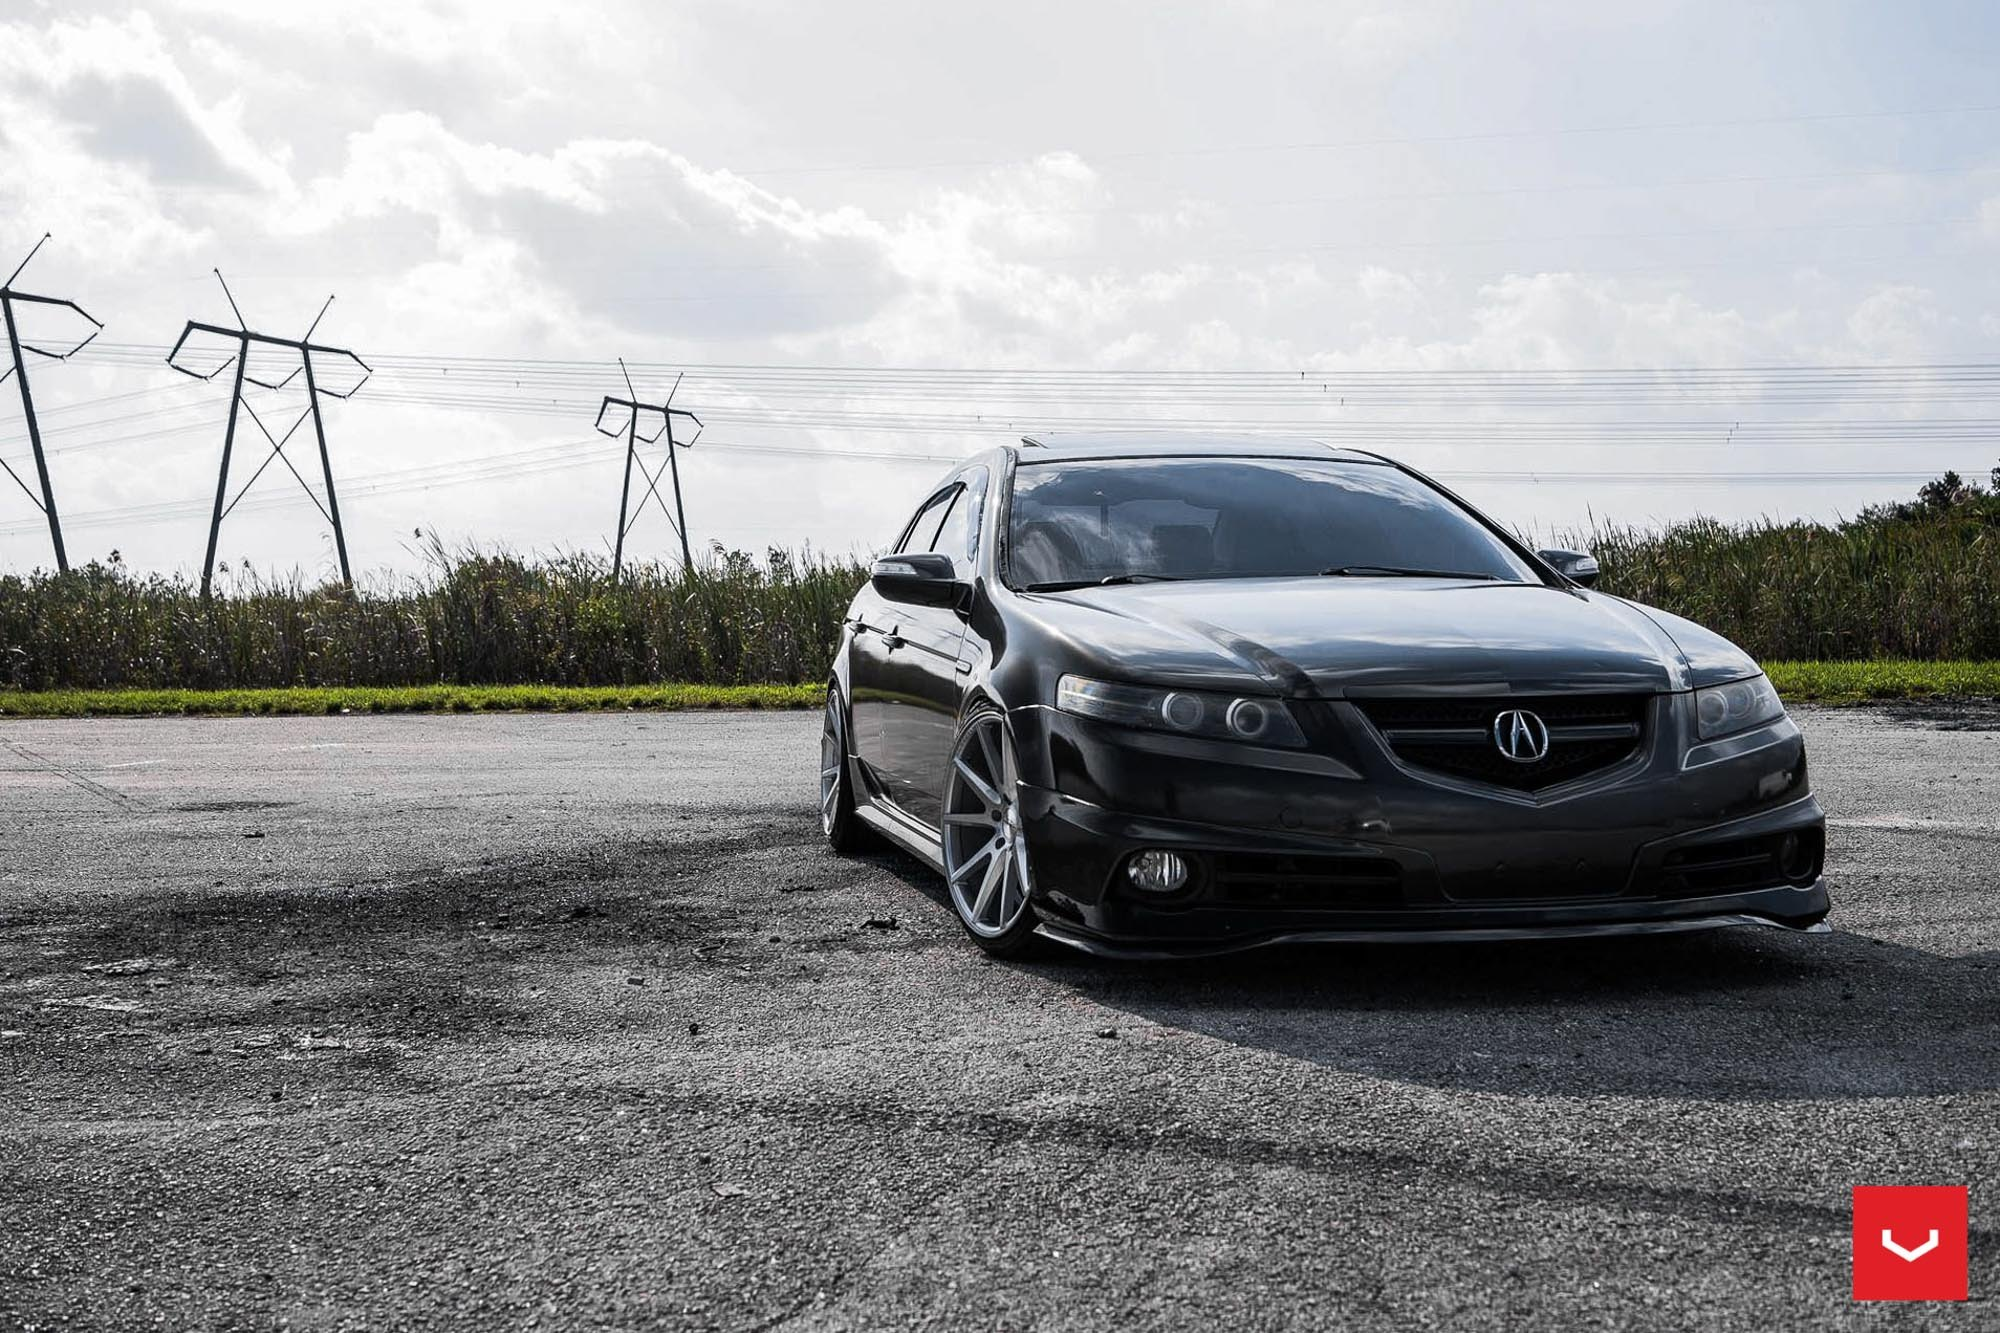 Stanced Acura TL With A Front Bumper Lip By Vossen Wheels CARiD - Acura tl bumper